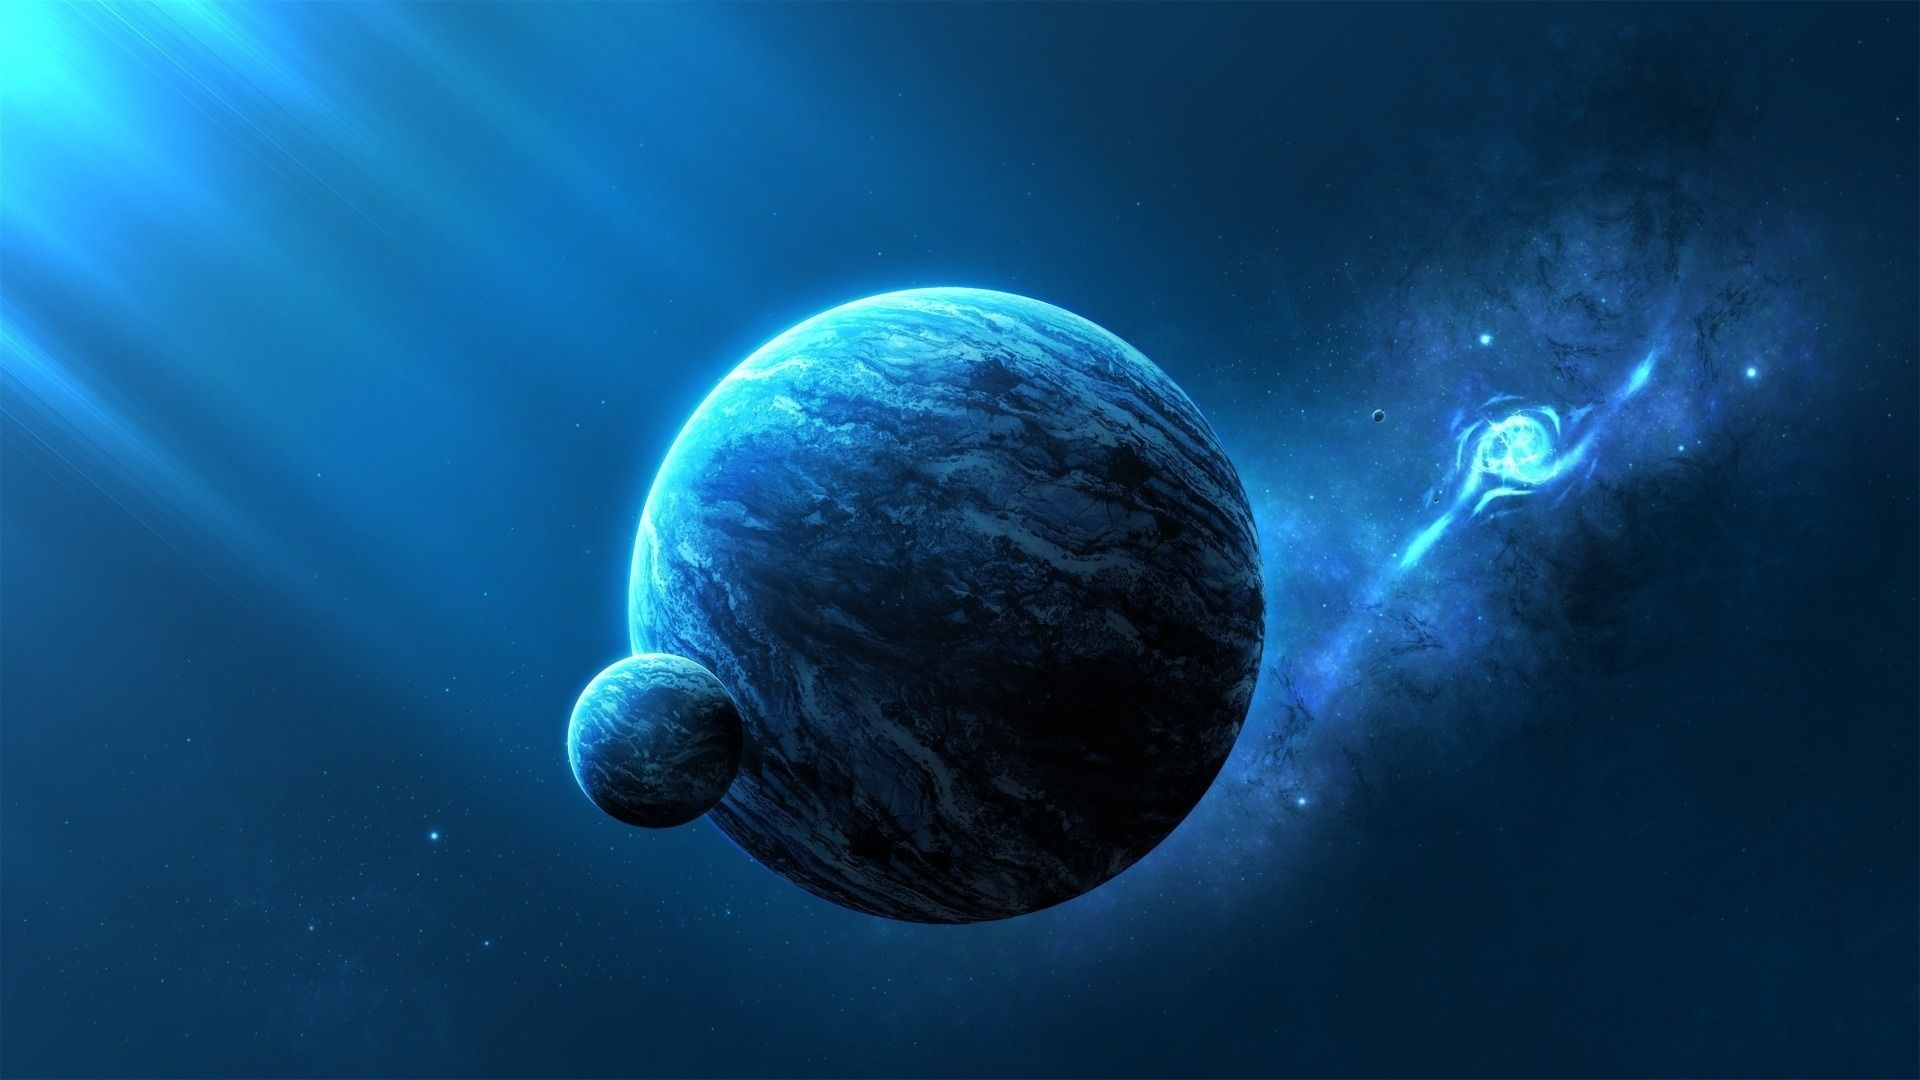 Space Themed Free Download Wallpaper